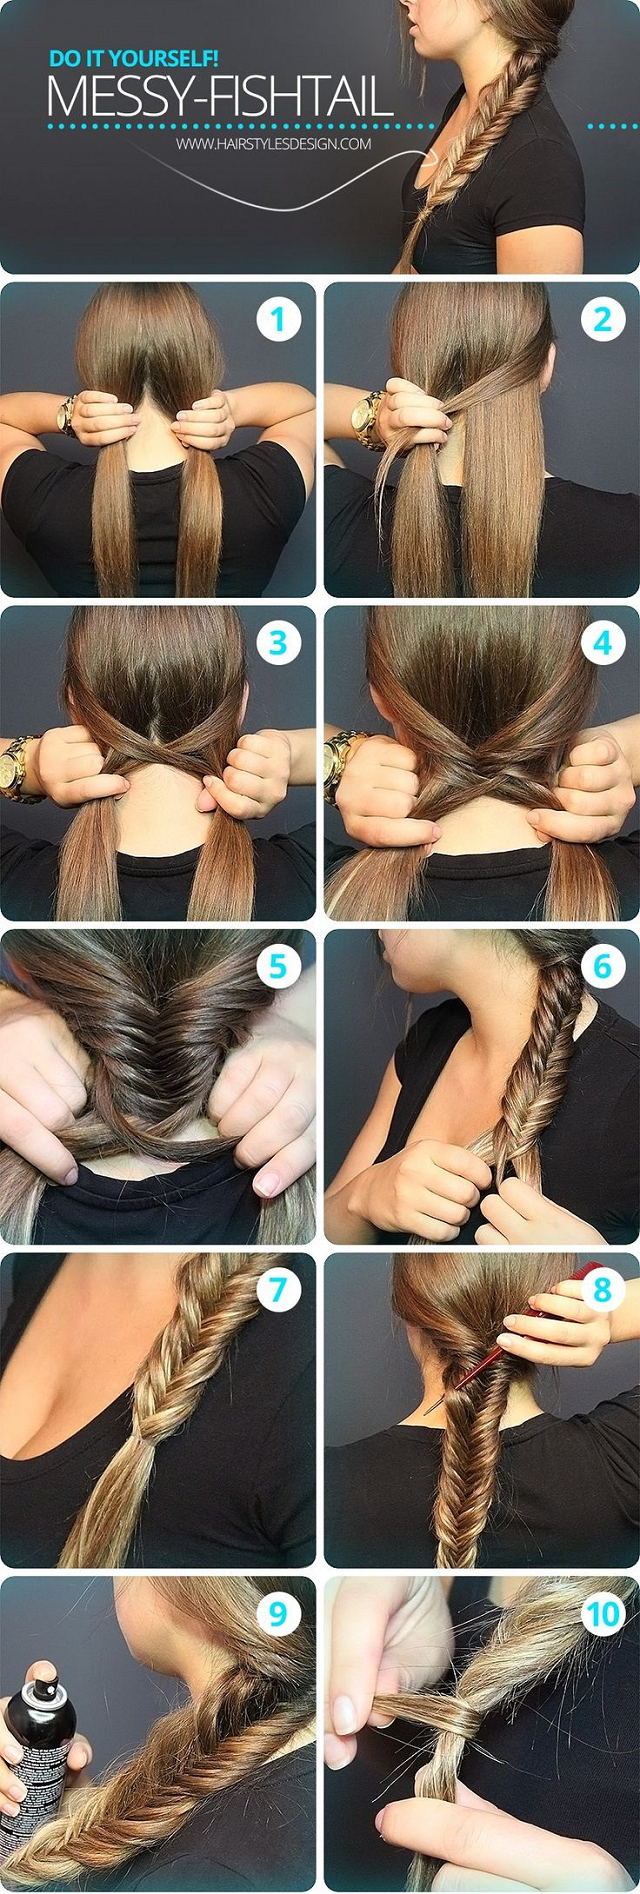 instructions on how to do a fishtail braid